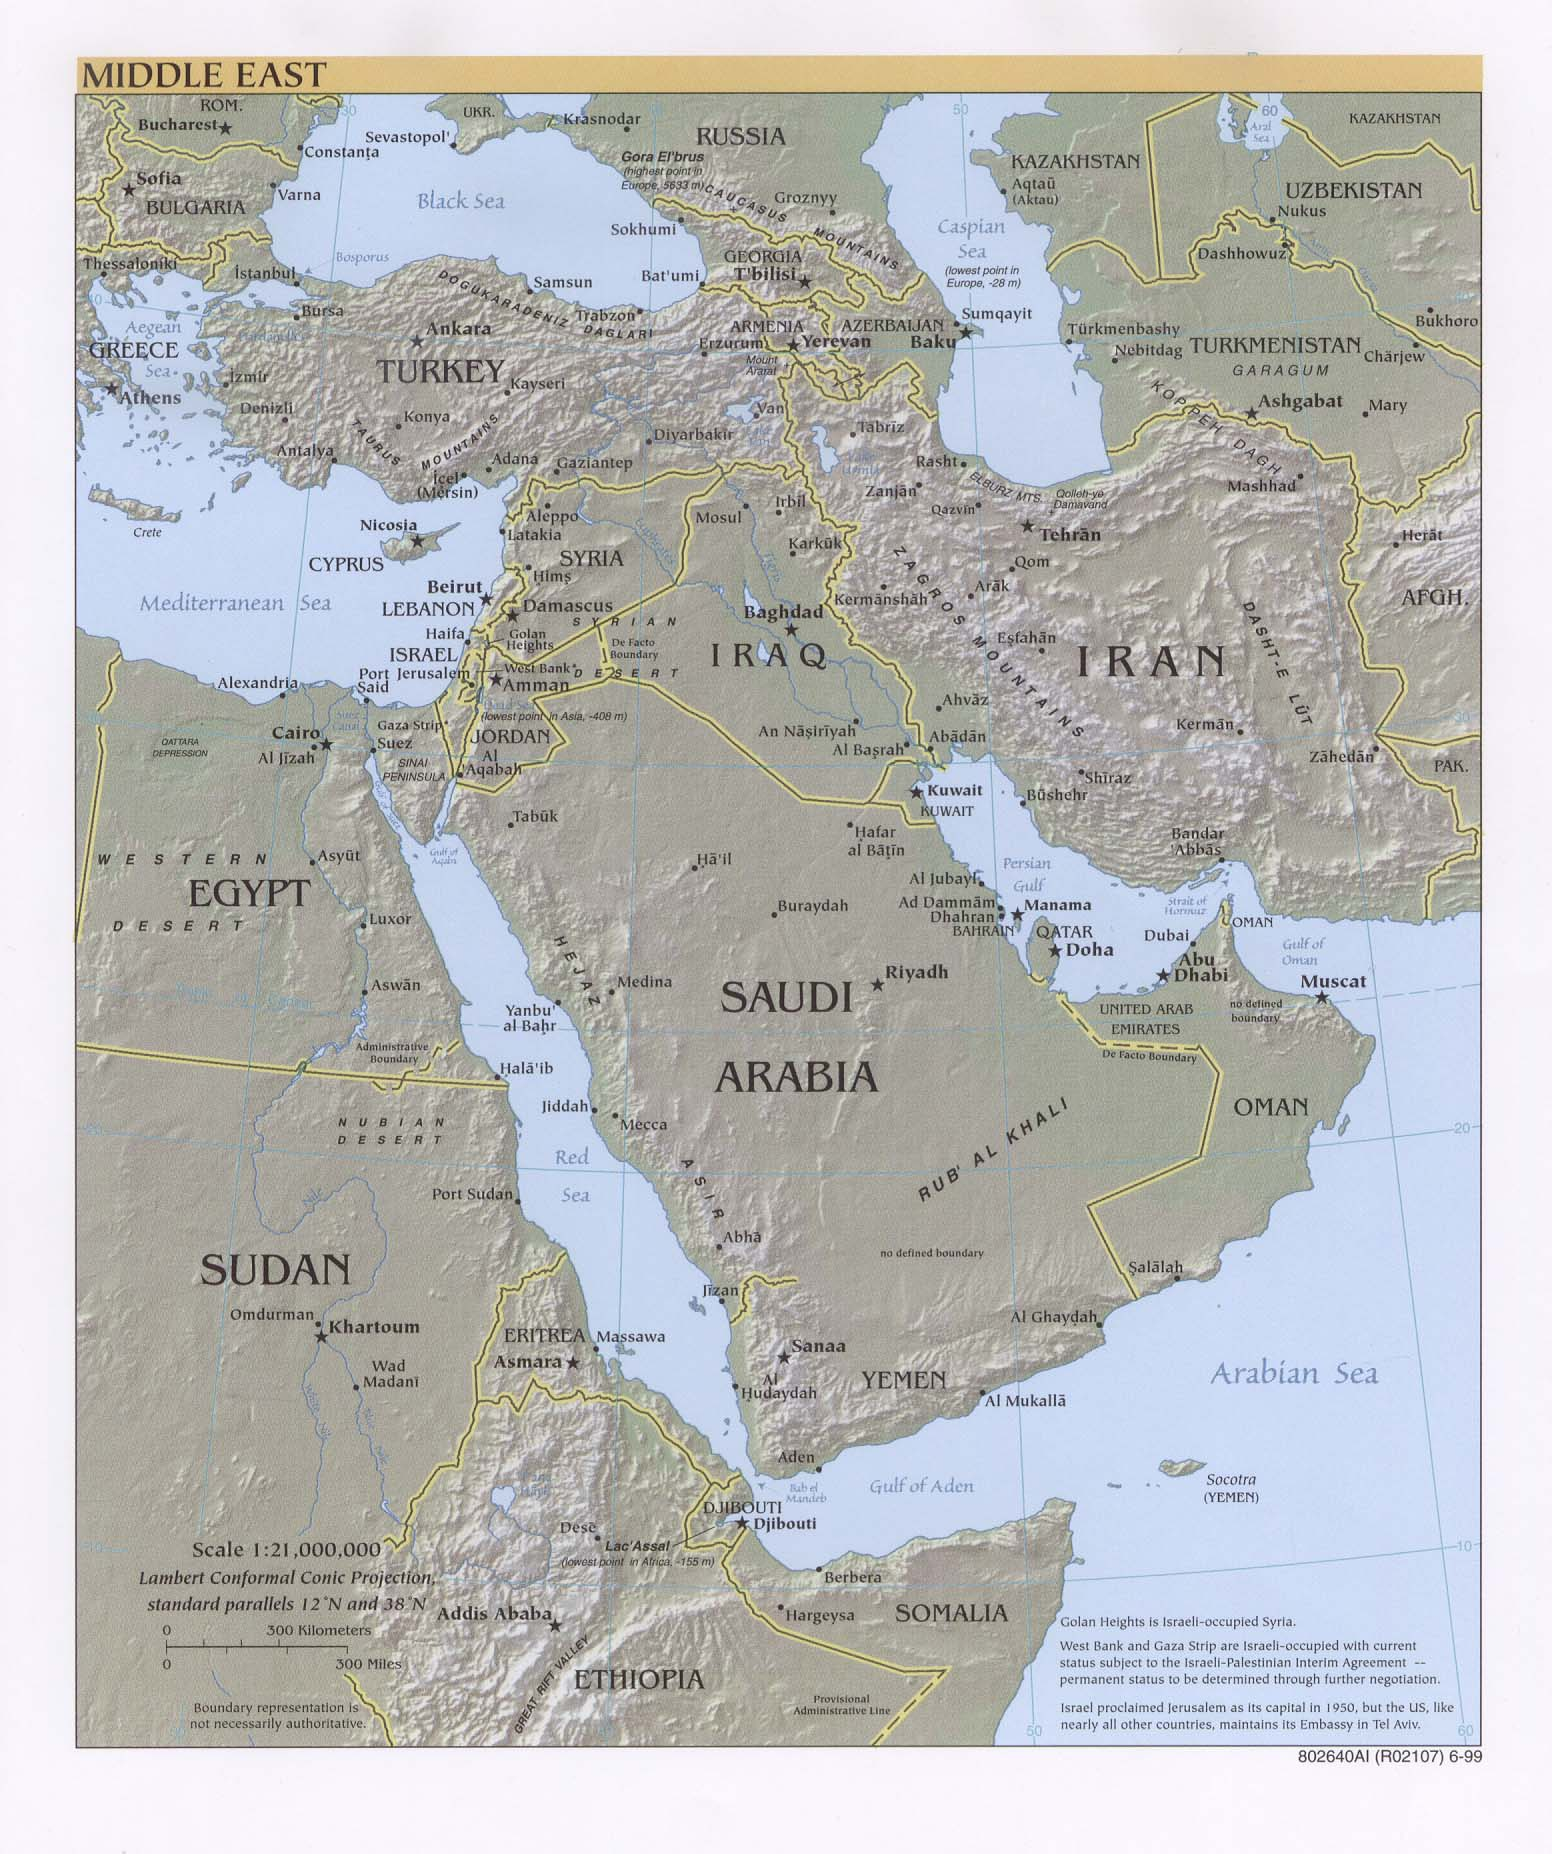 Middle East Maps - Perry-Castañeda Map Collection - UT Library Online